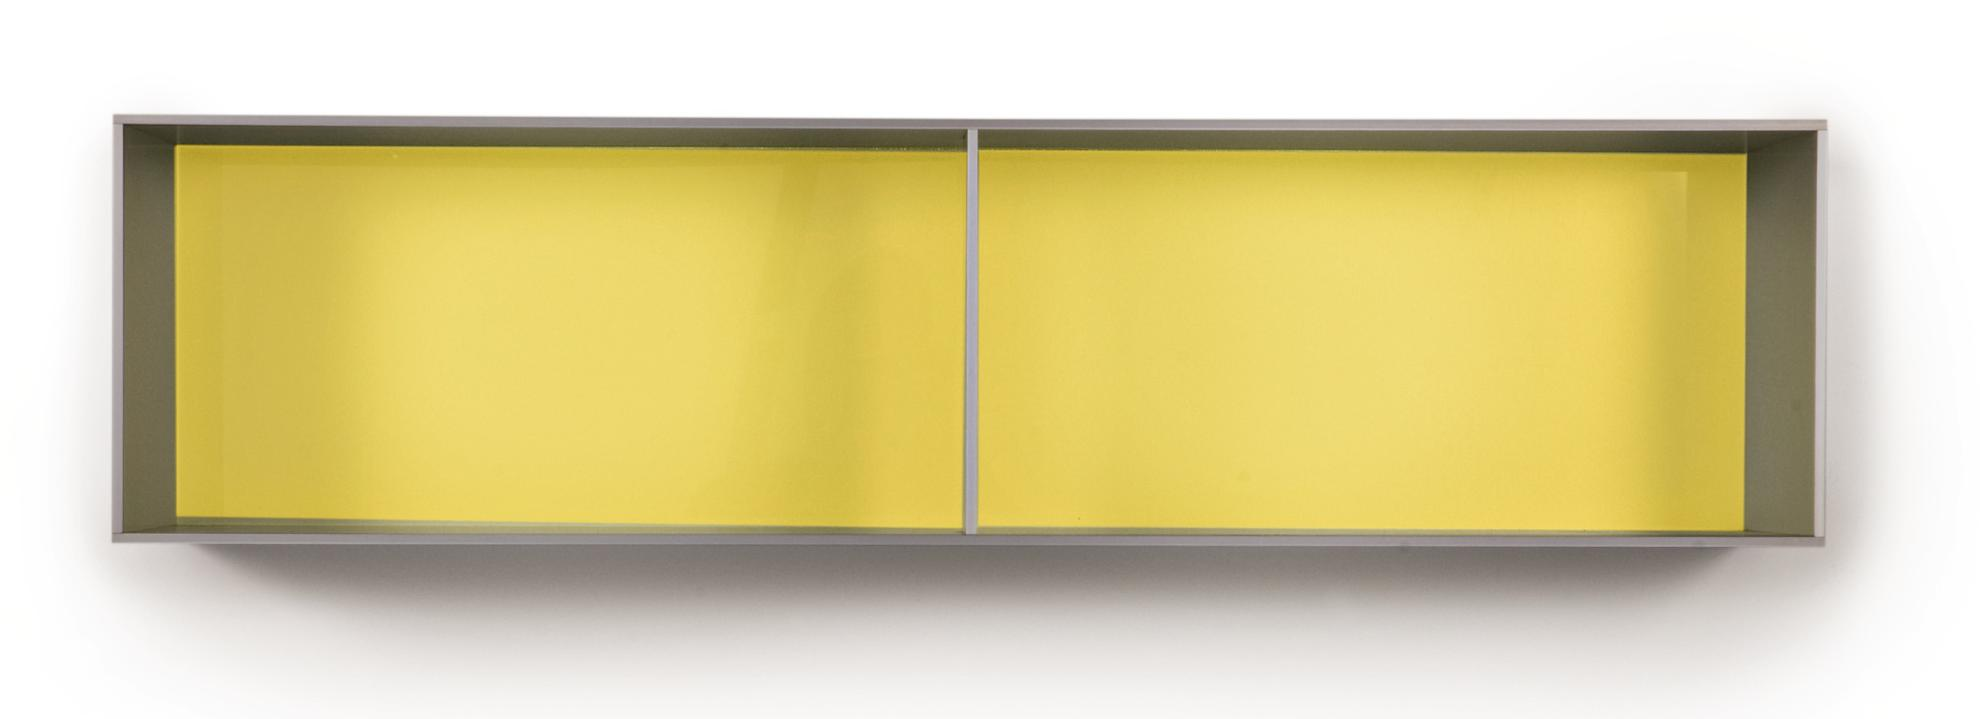 Donald Judd-Untitled-1991